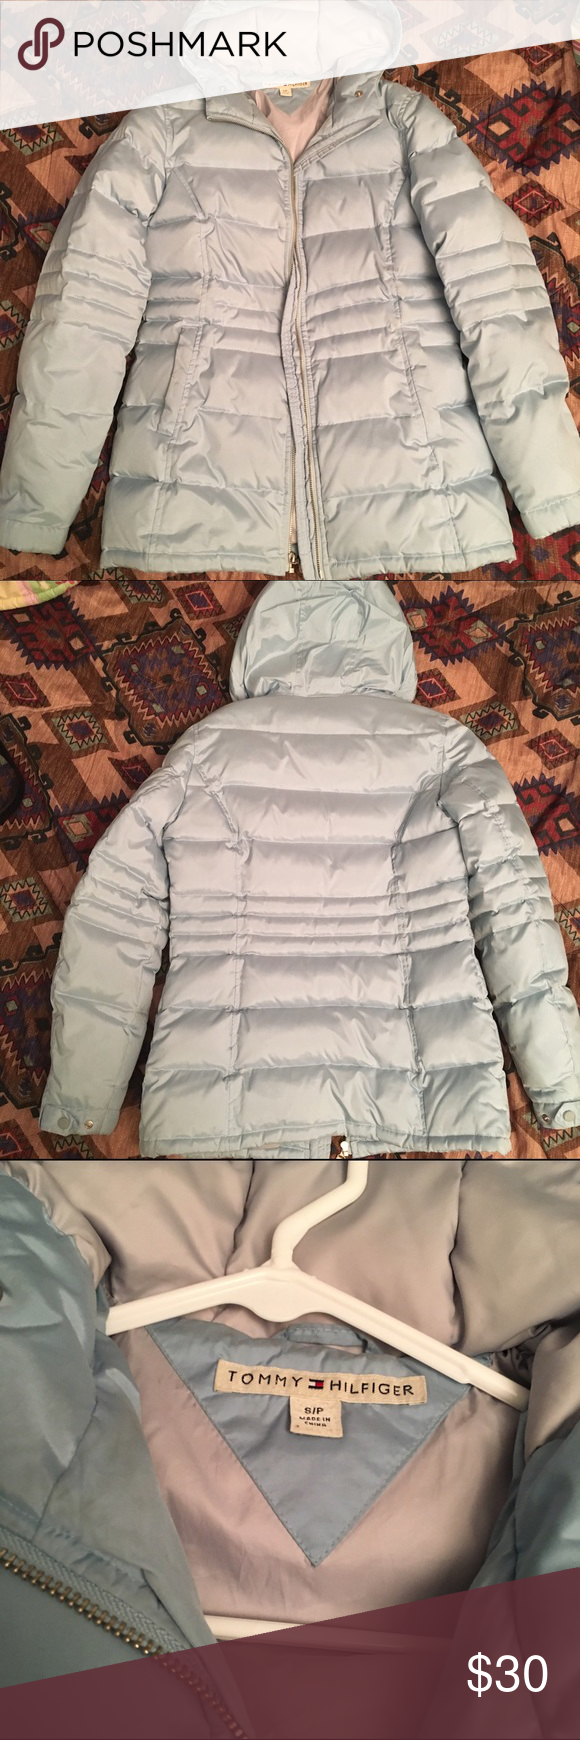 Tommy Hilfiger Puffer Jacket in Powder Blue Powder Blue Tommy Hilfiger Jackets & Coats Puffers